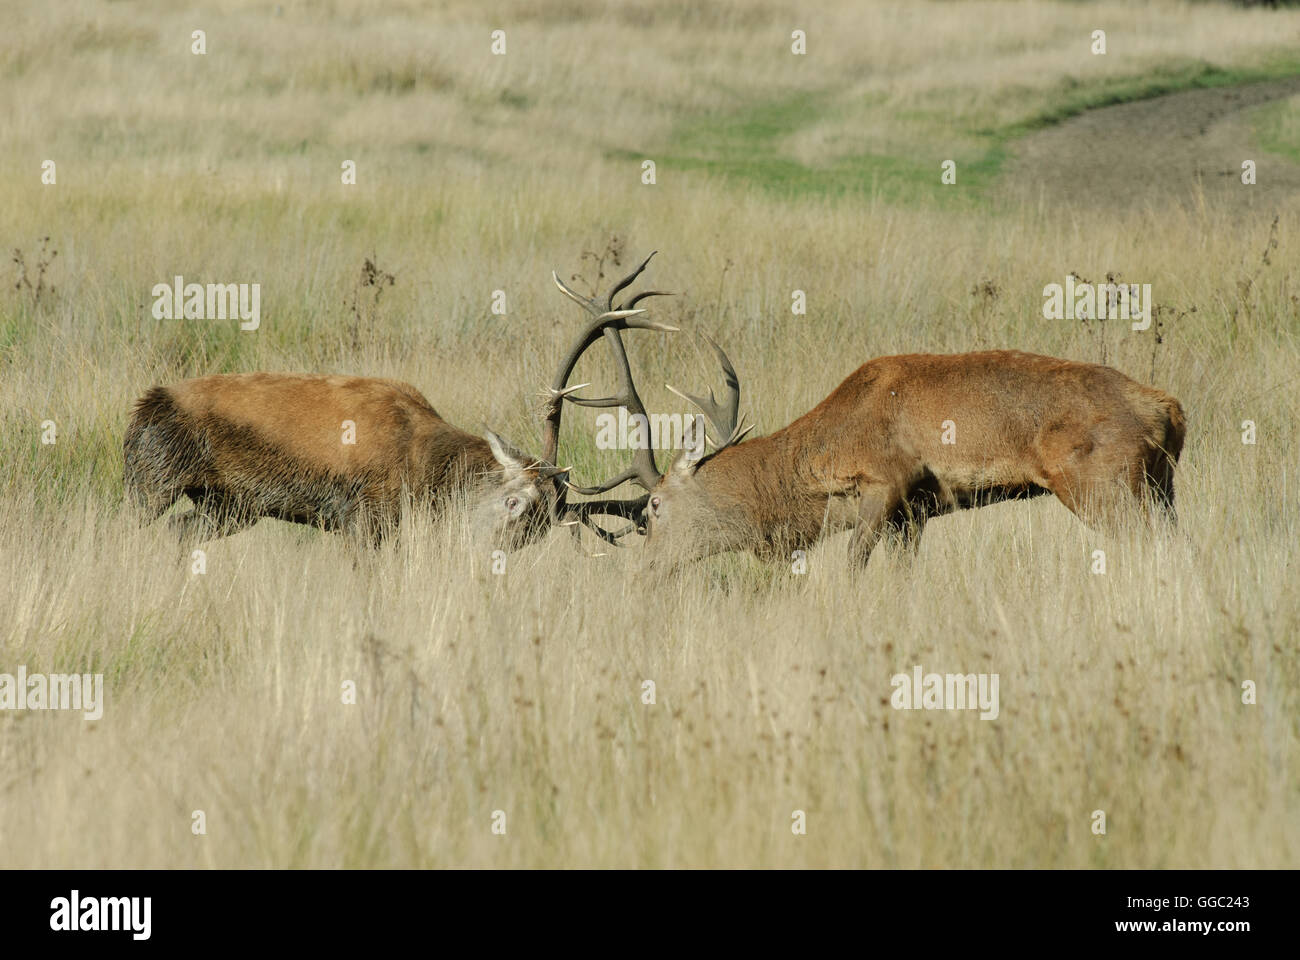 Two fighting Red deer stags during the rutting season Stock Photo